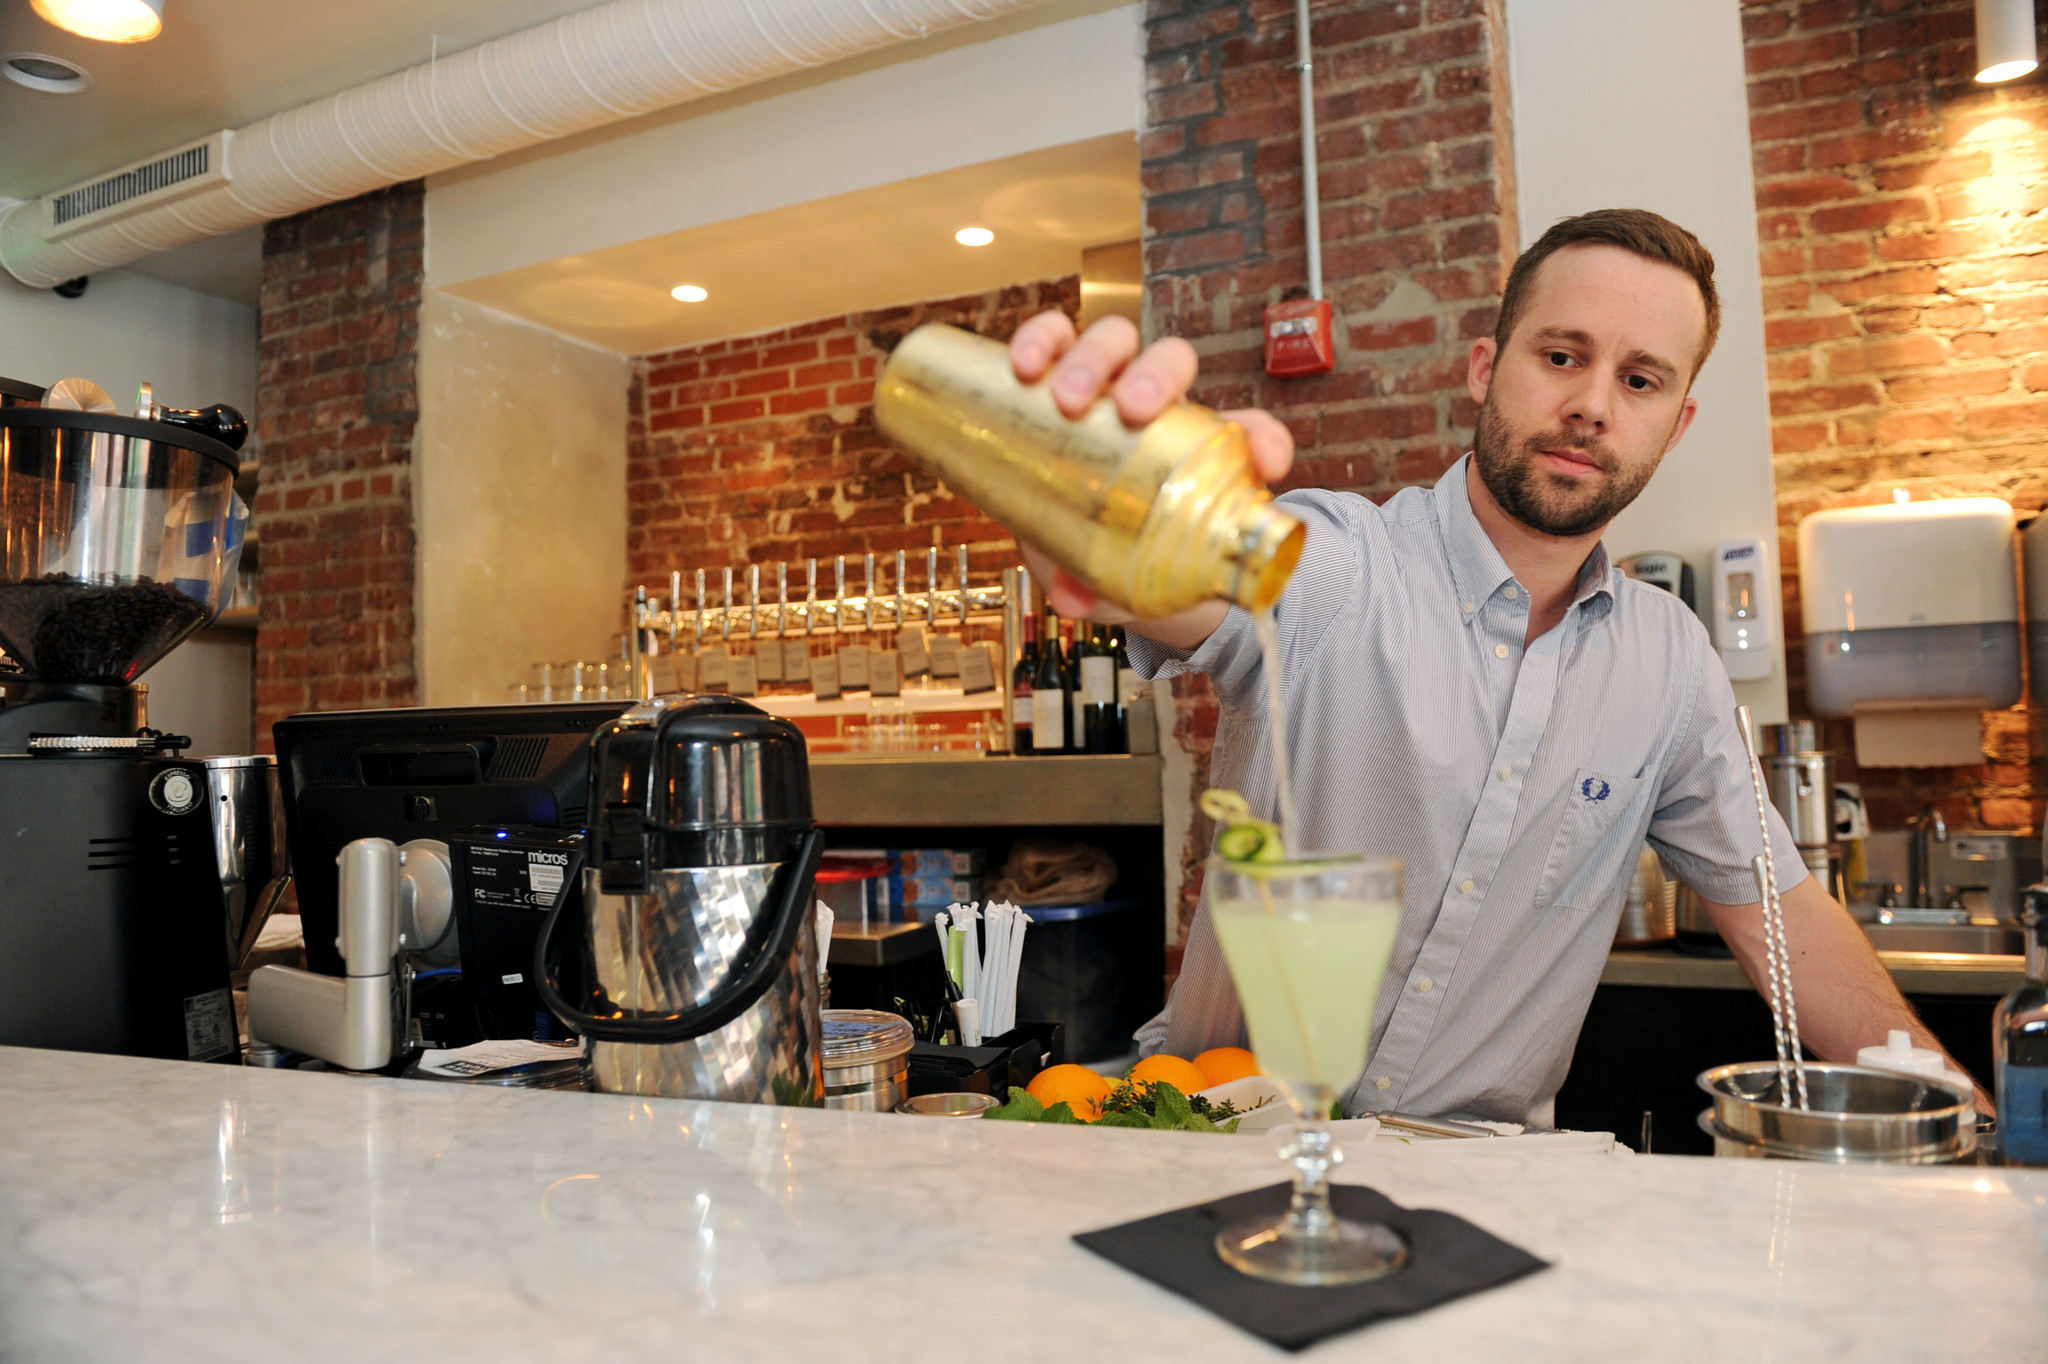 Dooby S Adds Versatility To City S Coffee Culture